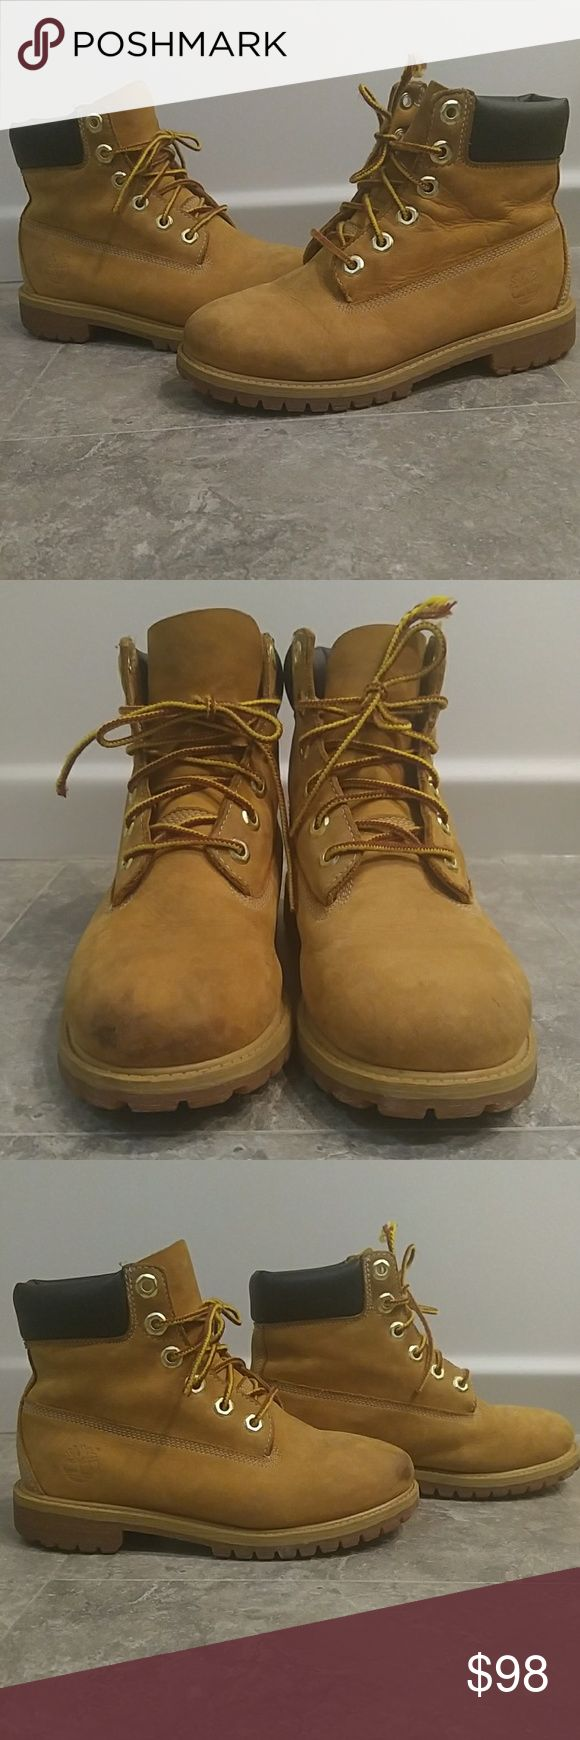 Timberland Boots In very good used condition. Minor signs of wear as seen in pics. Small stain at right toe tip. Inner & outer soles in excellent used condition. Genuine leather. Fits like women's sz 5.5-6. *Offers welcomed. From smoke/fragrance/pet free home. No trades/modeling.* Timberland Shoes Lace Up Boots